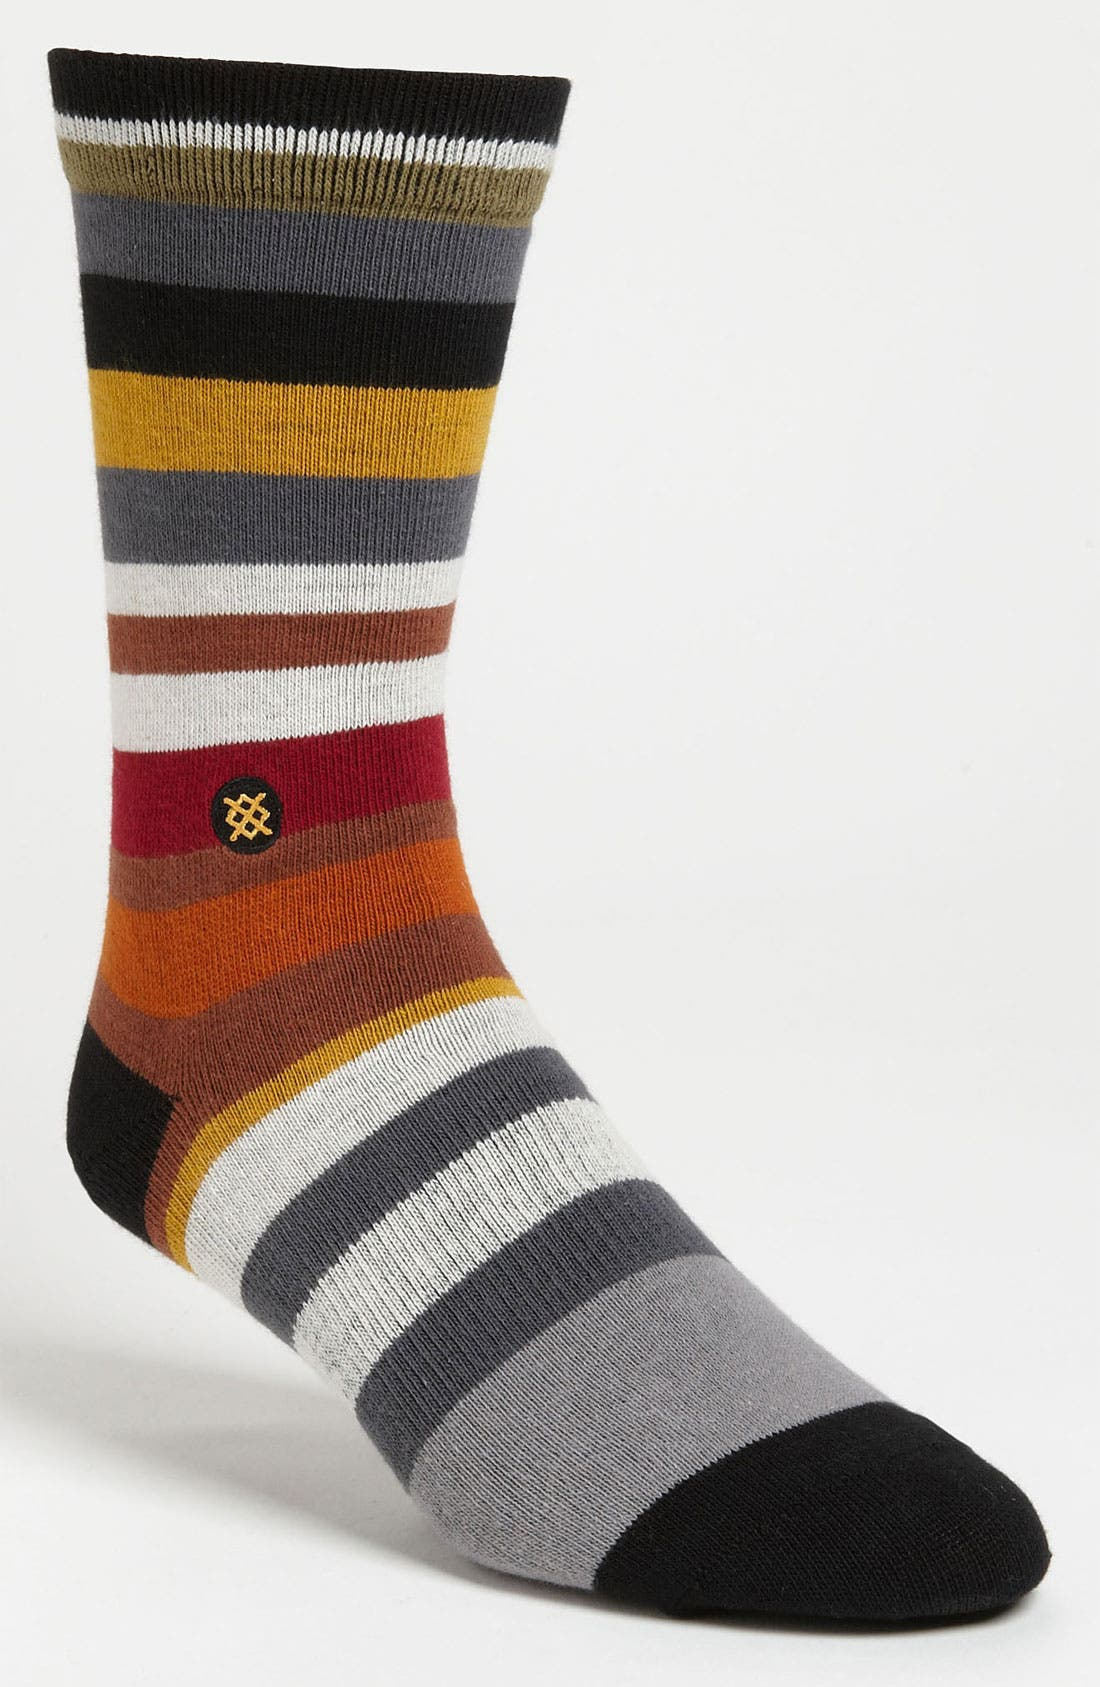 Alternate Image 1 Selected - Stance 'Cannon' Socks